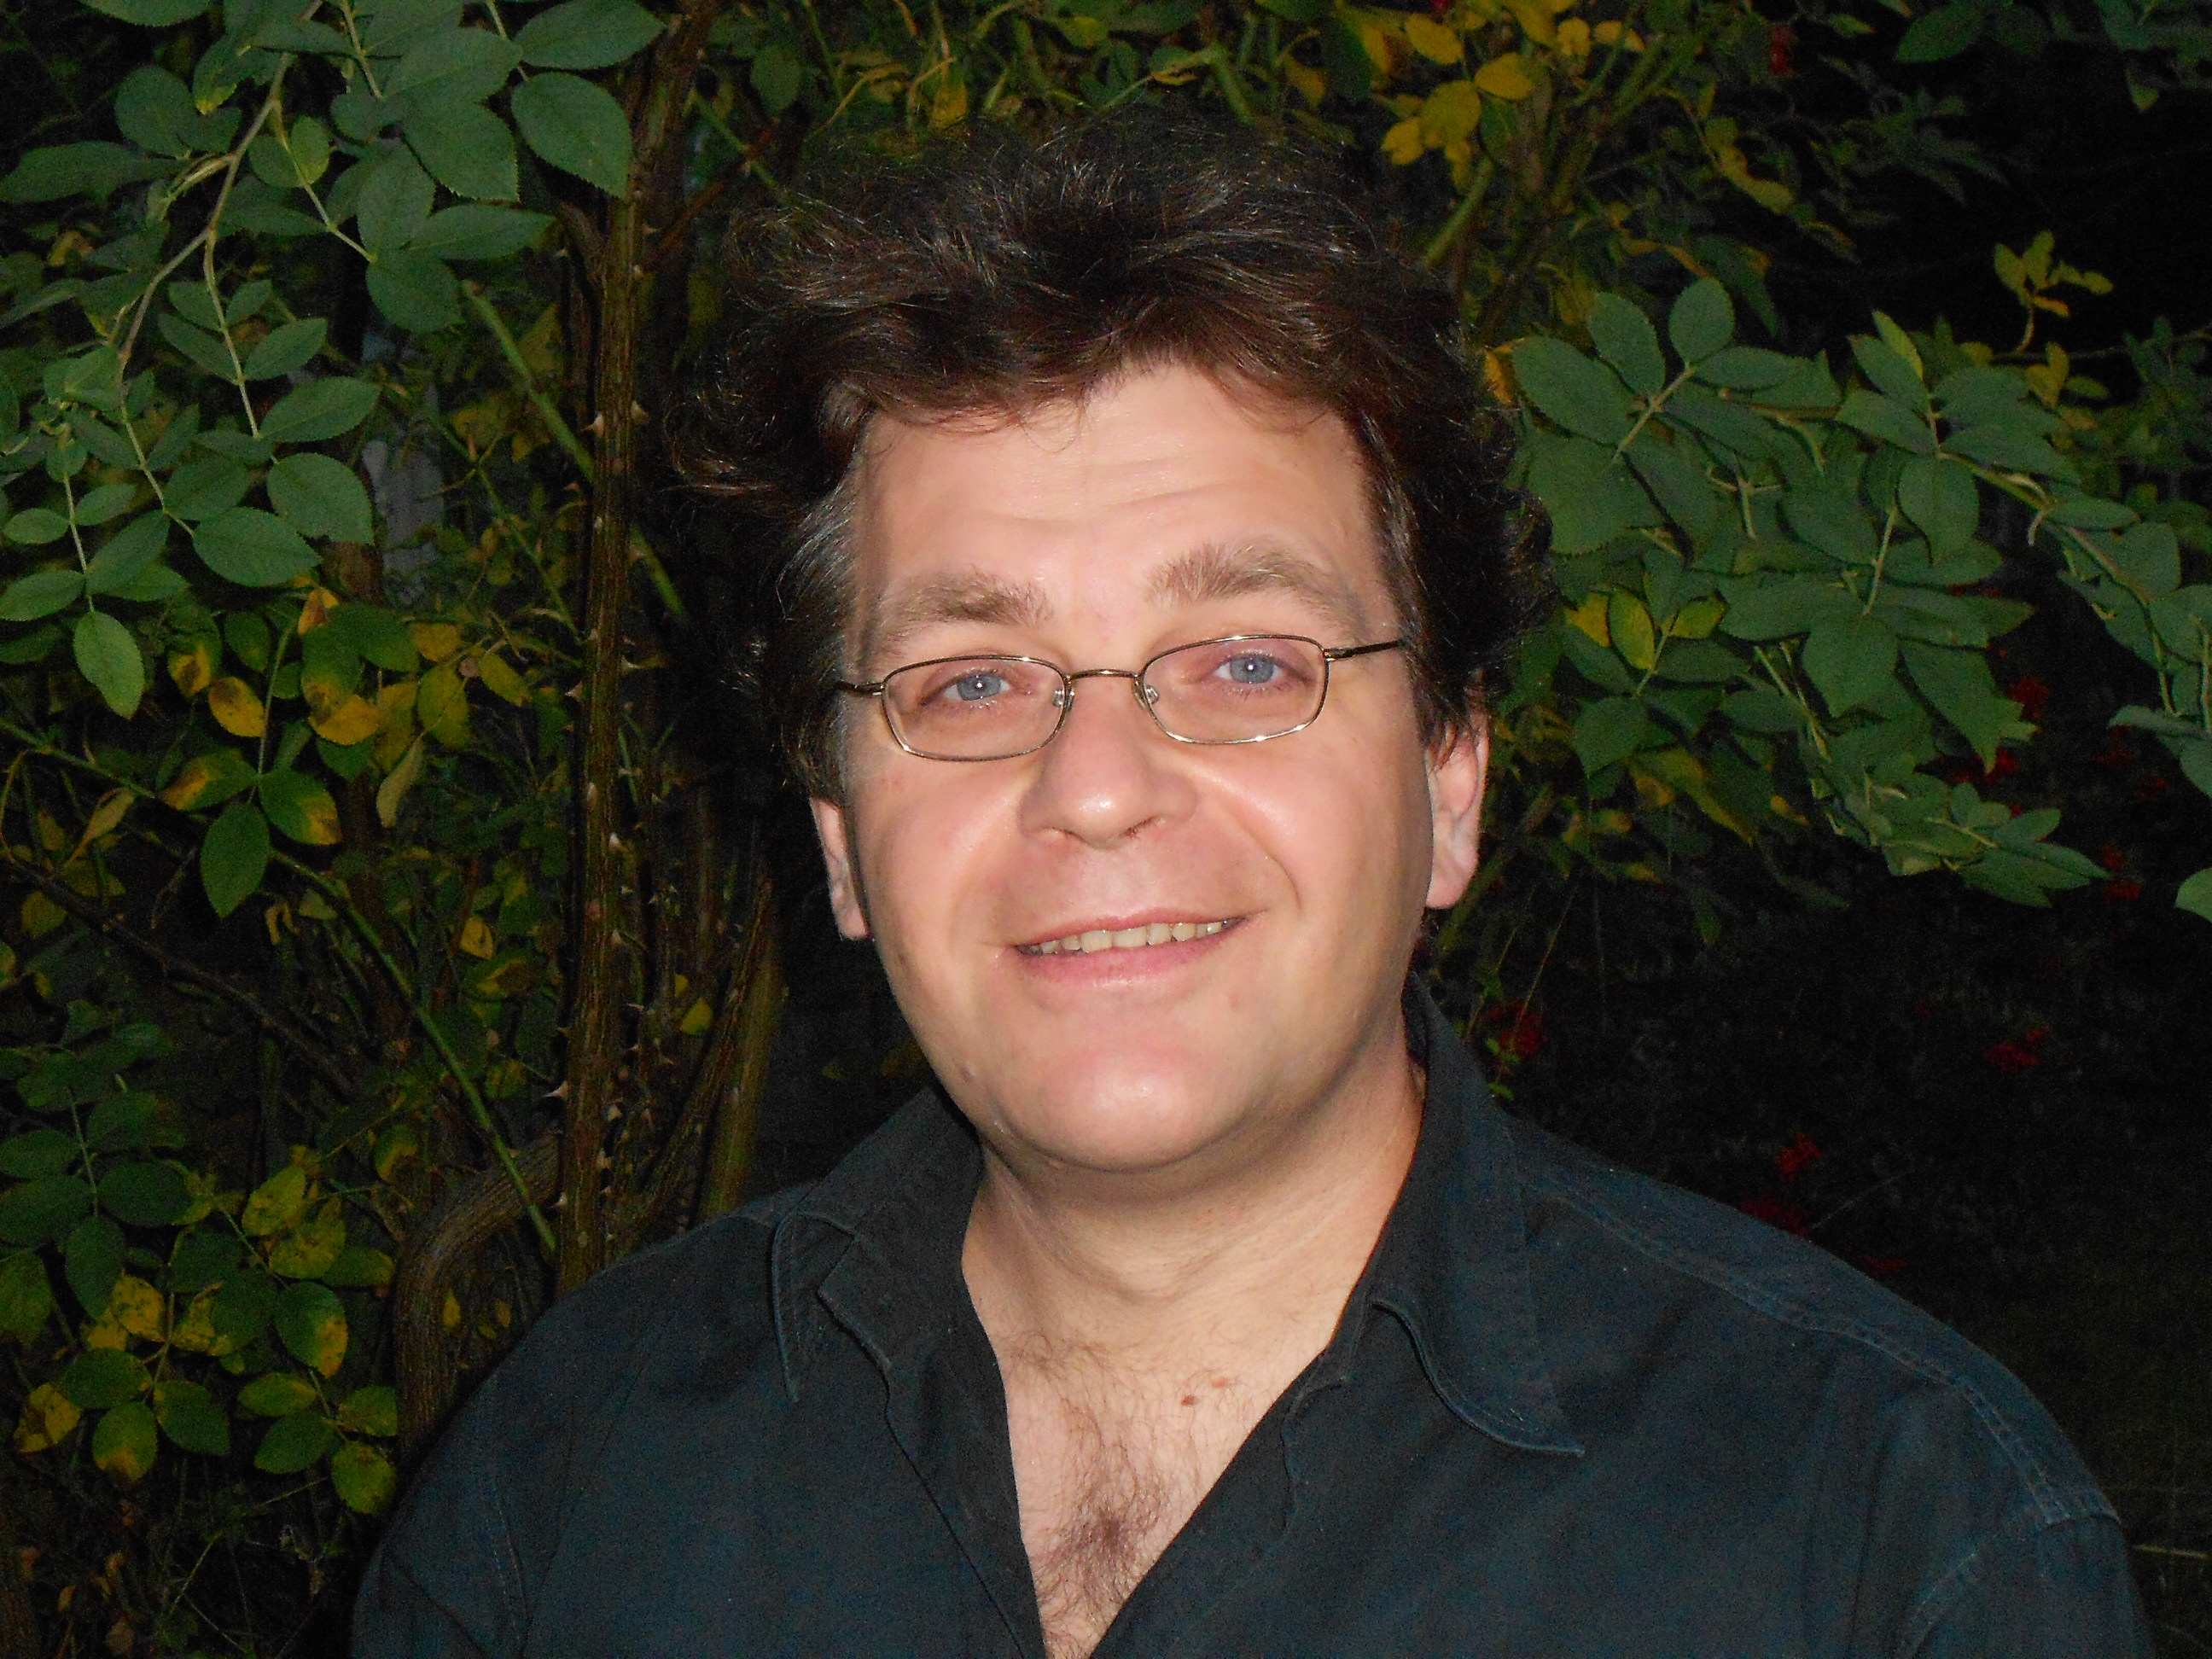 Emmanuel Xystrakis - PhD - School of Biological Sciences, Health and Biotechnology - Subject Matter Expert from Kolabtree